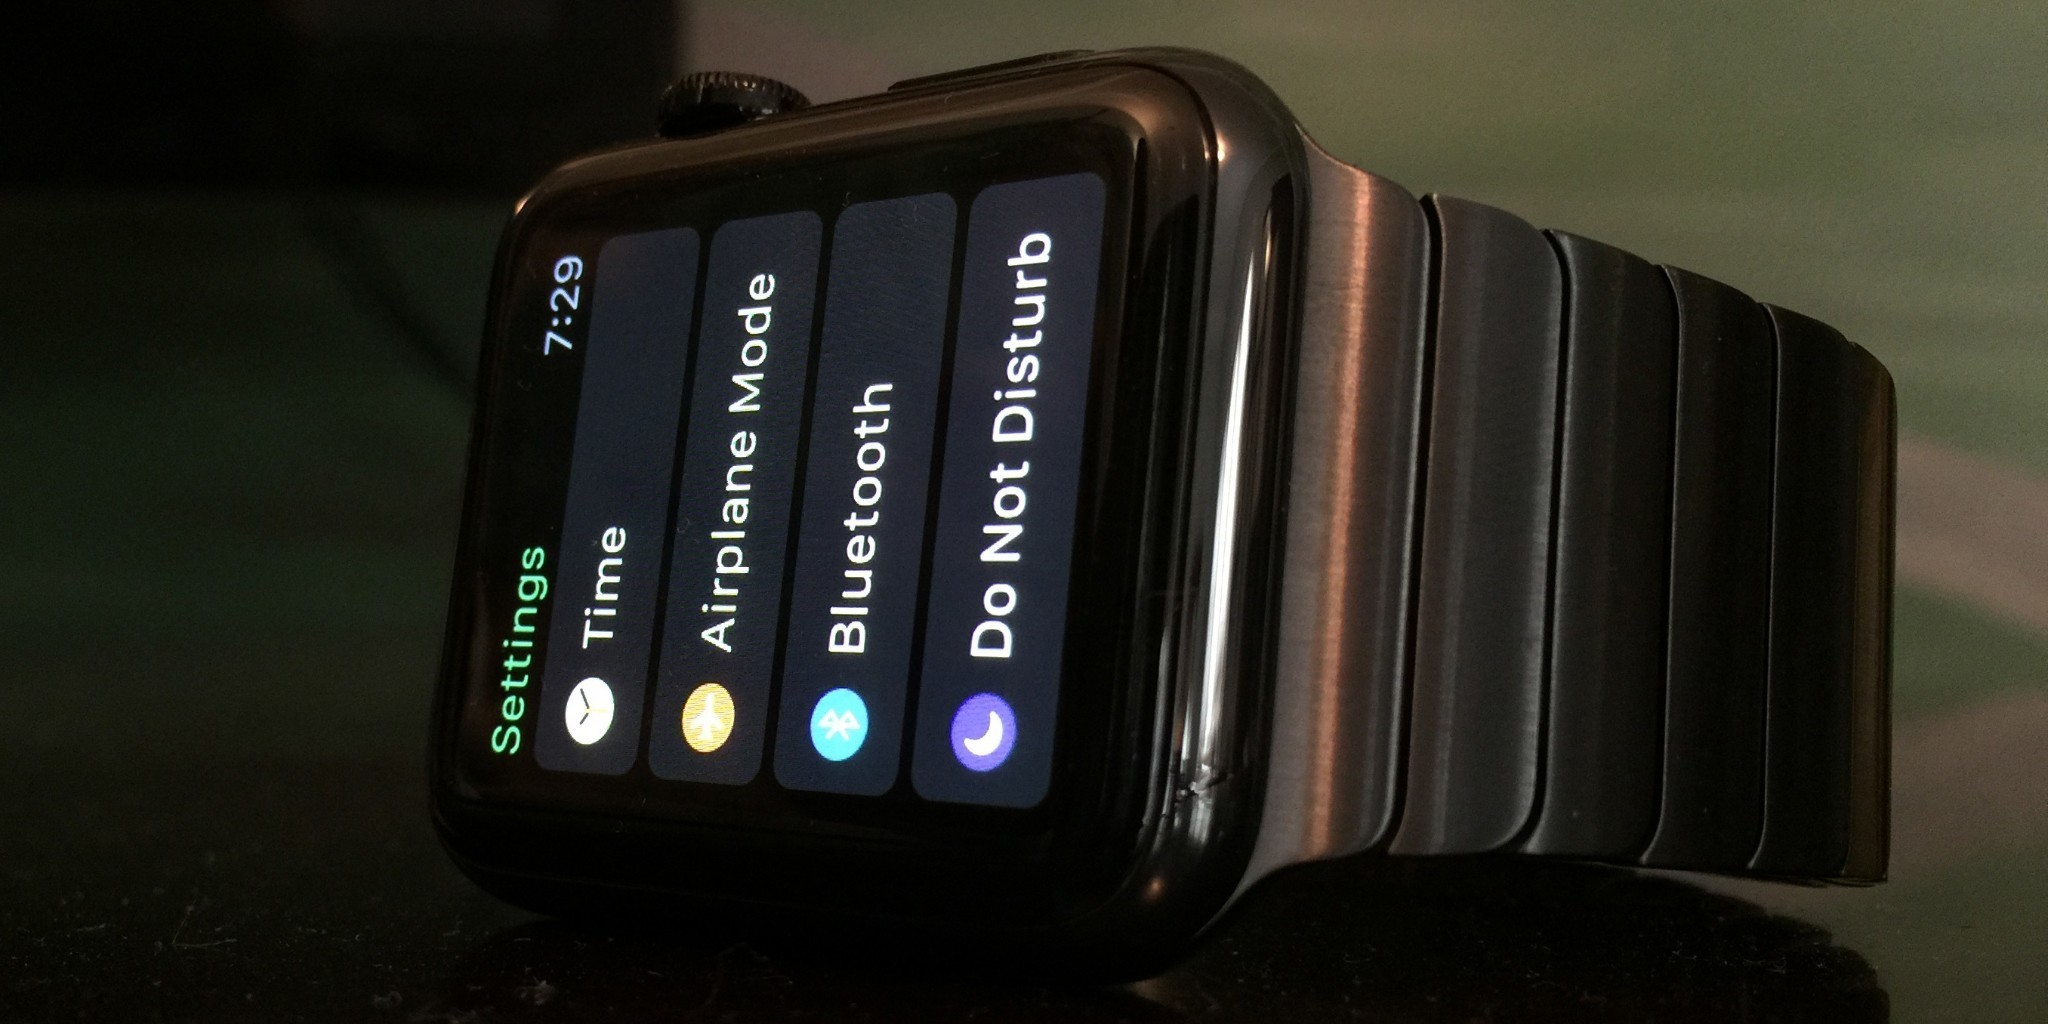 Apple clarifies Space Black Apple Watch won't hit stores until all online orders fulfilled